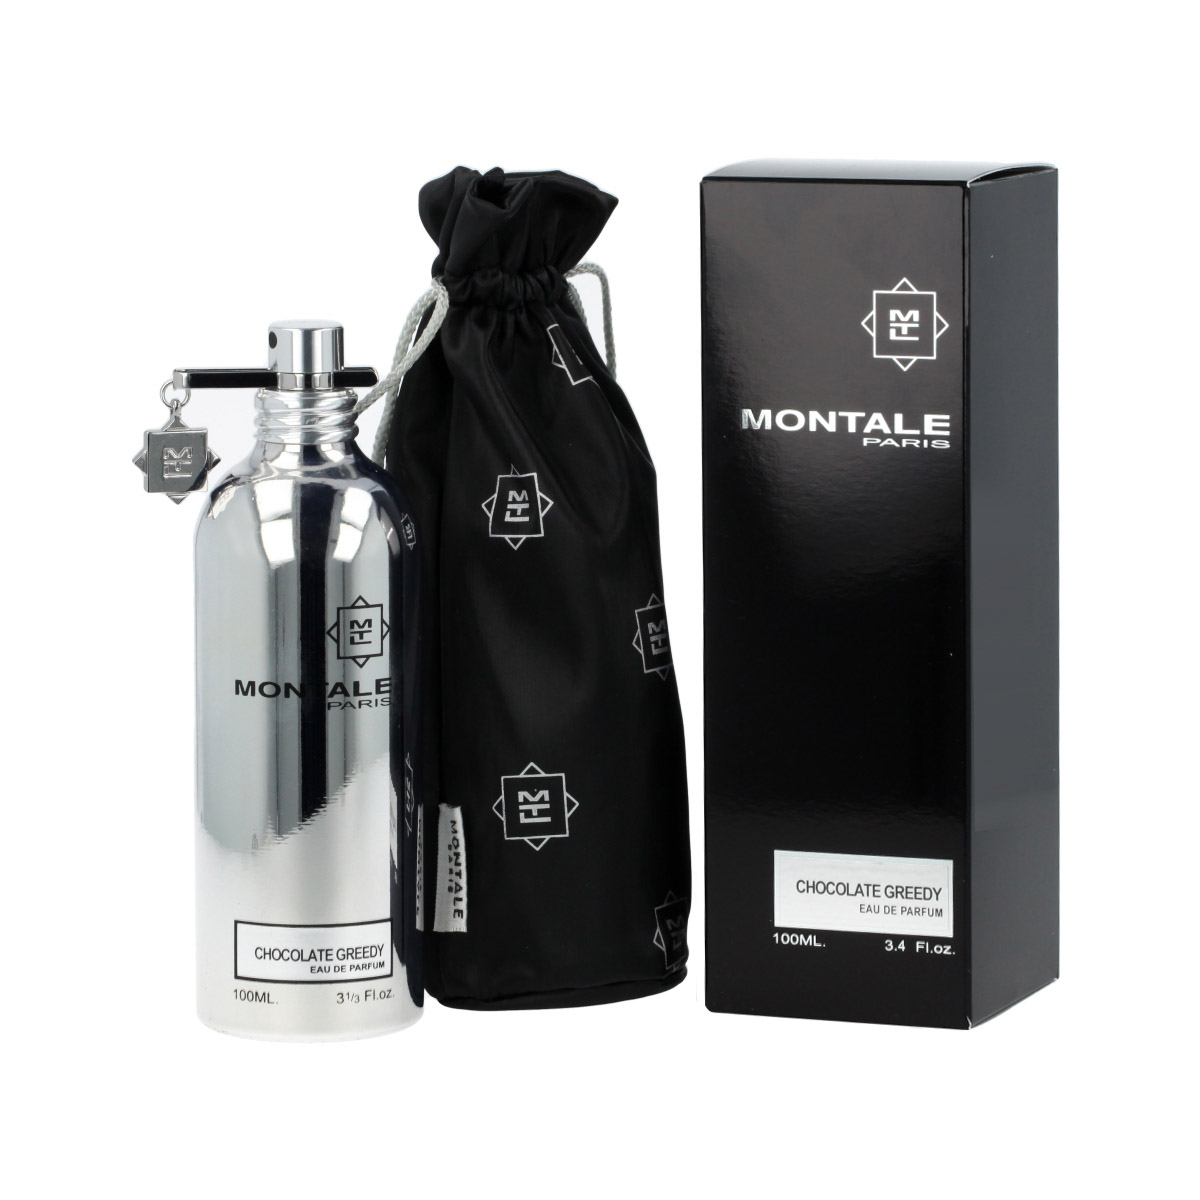 Montale Paris Chocolate Greedy Eau De Parfum 100 ml (unisex) 71615